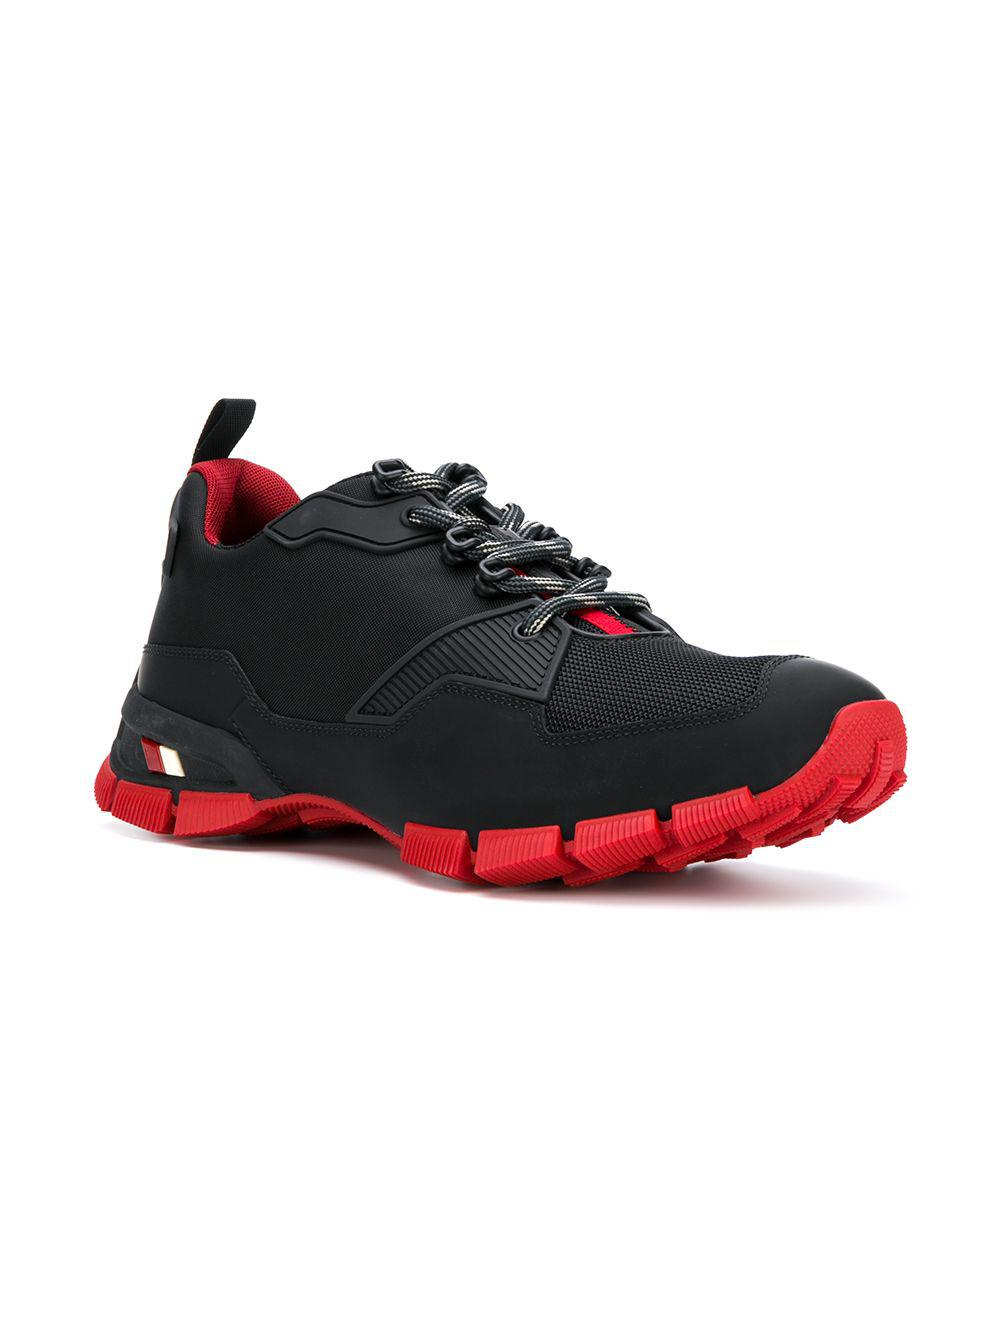 Prada Leather Cross-section Sneakers in